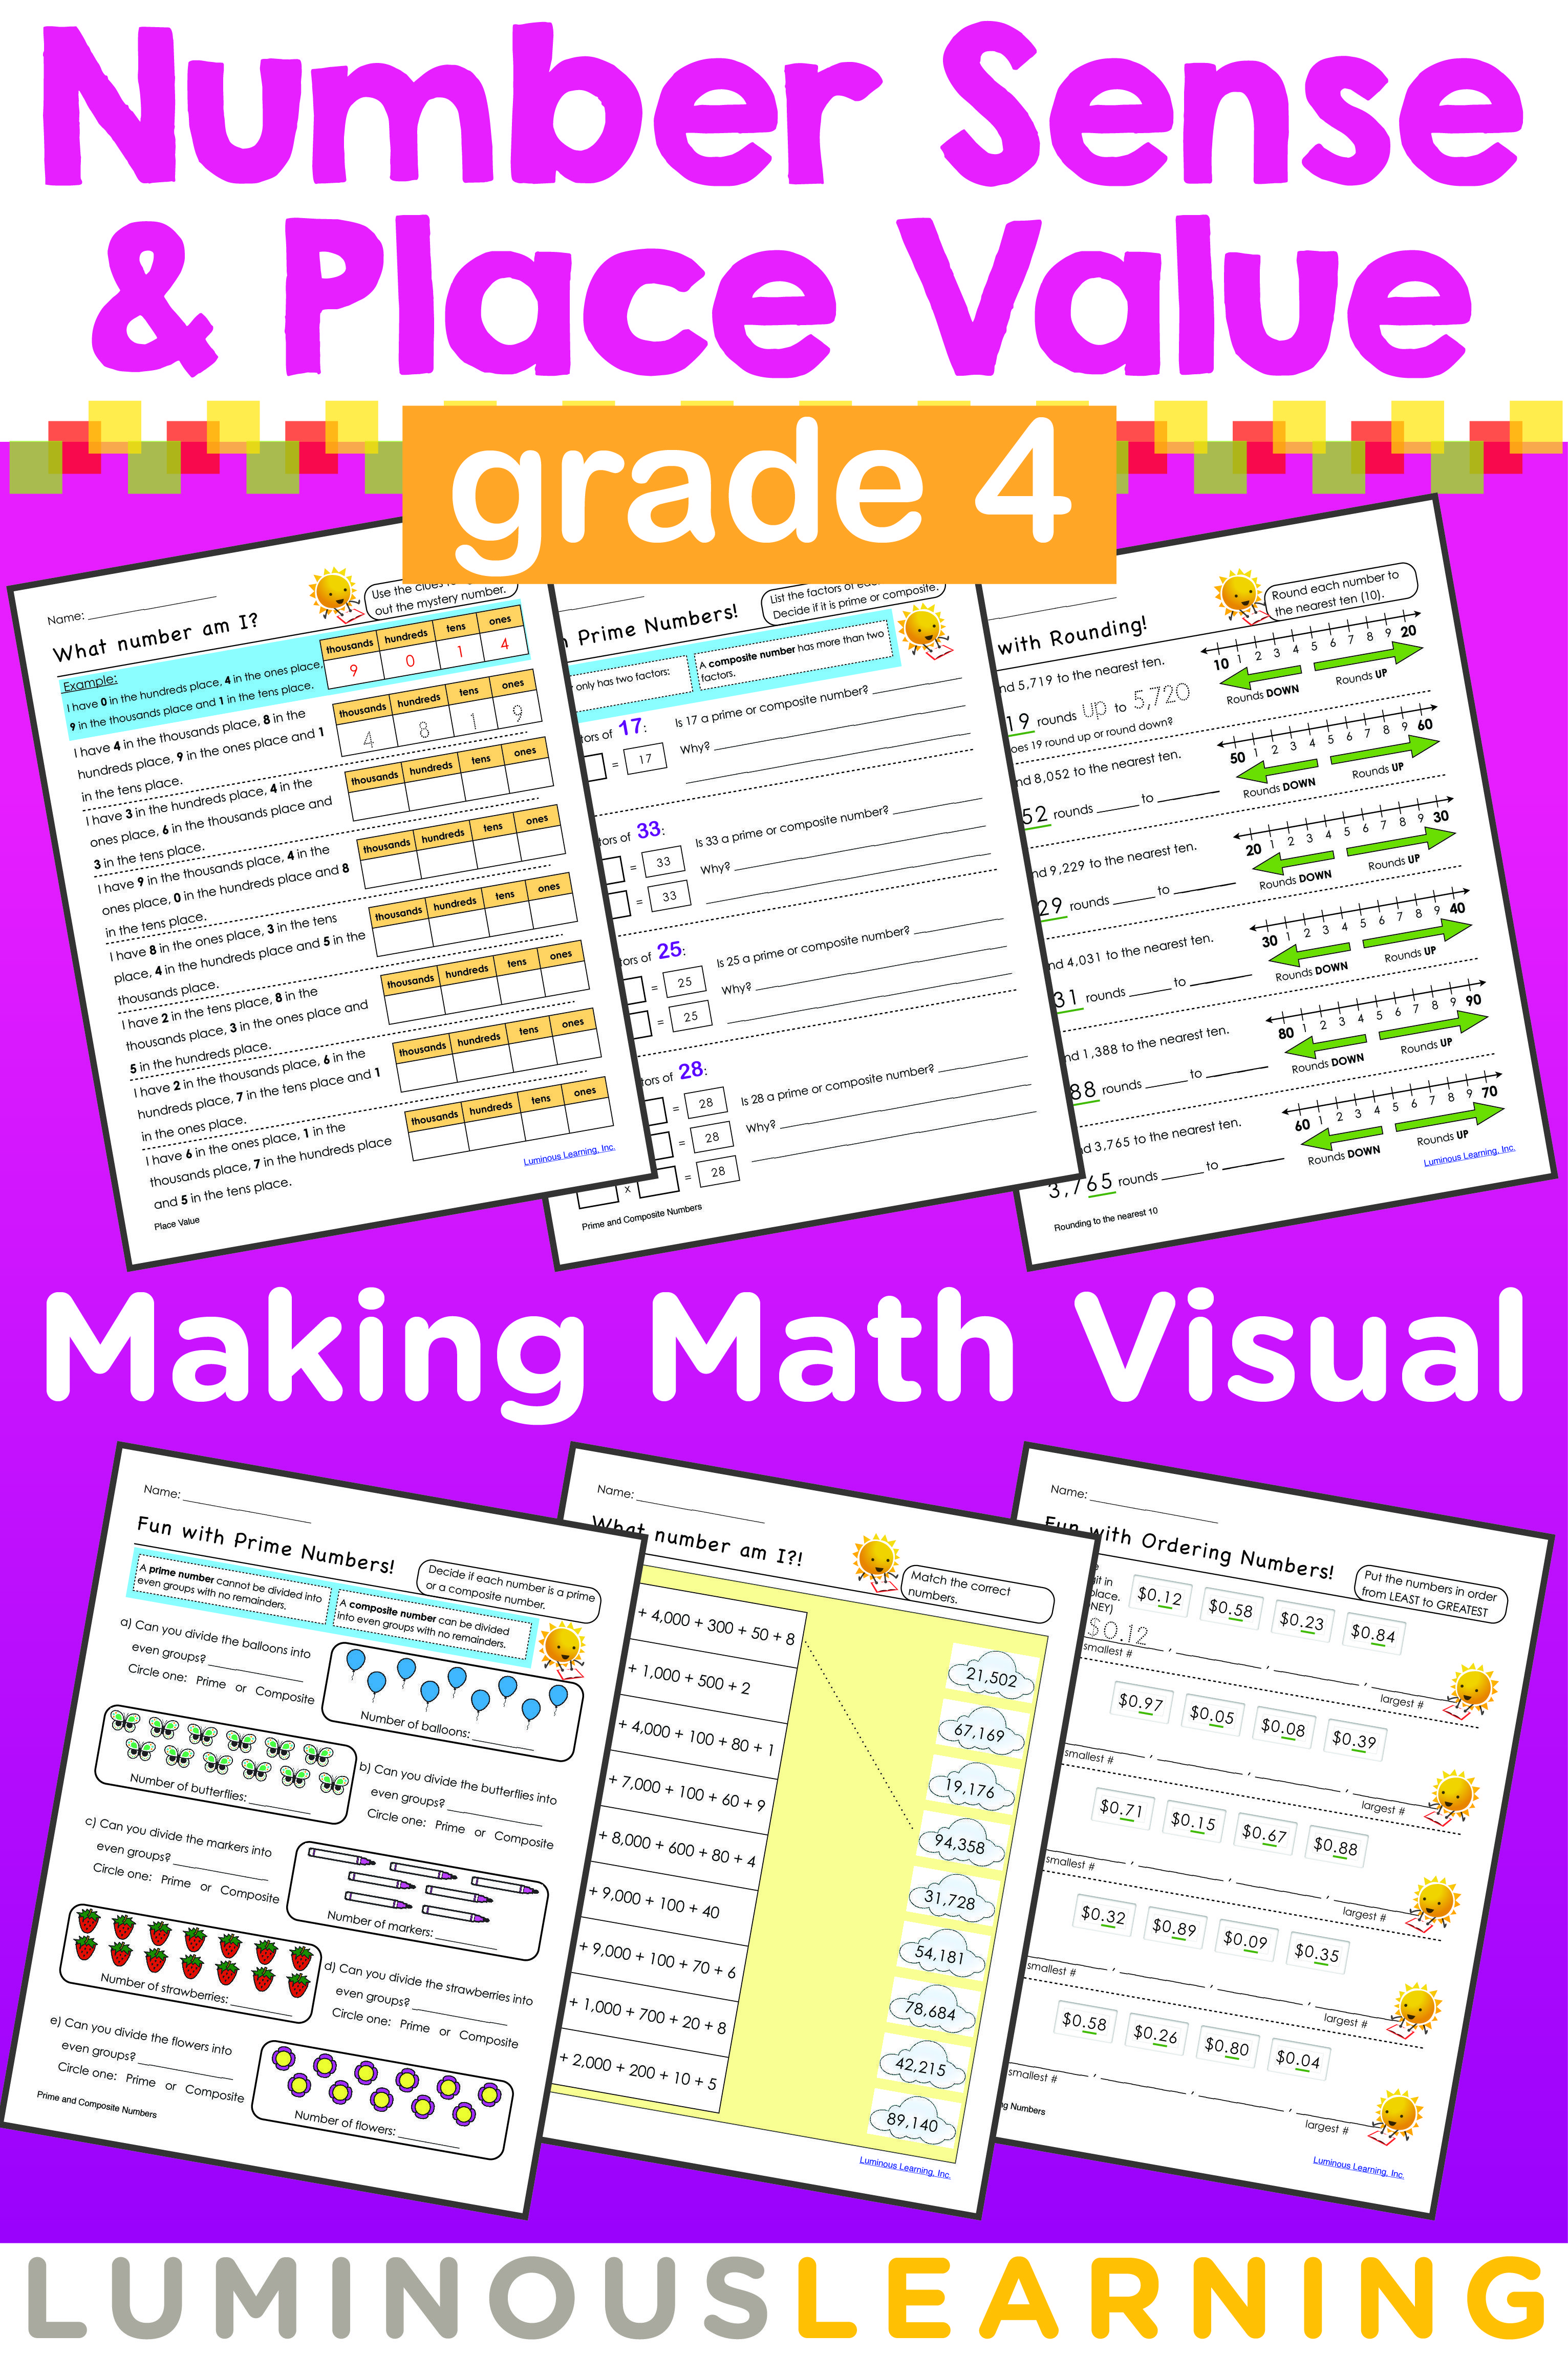 Luminous Learning Grade 4 Number Sense And Place Value